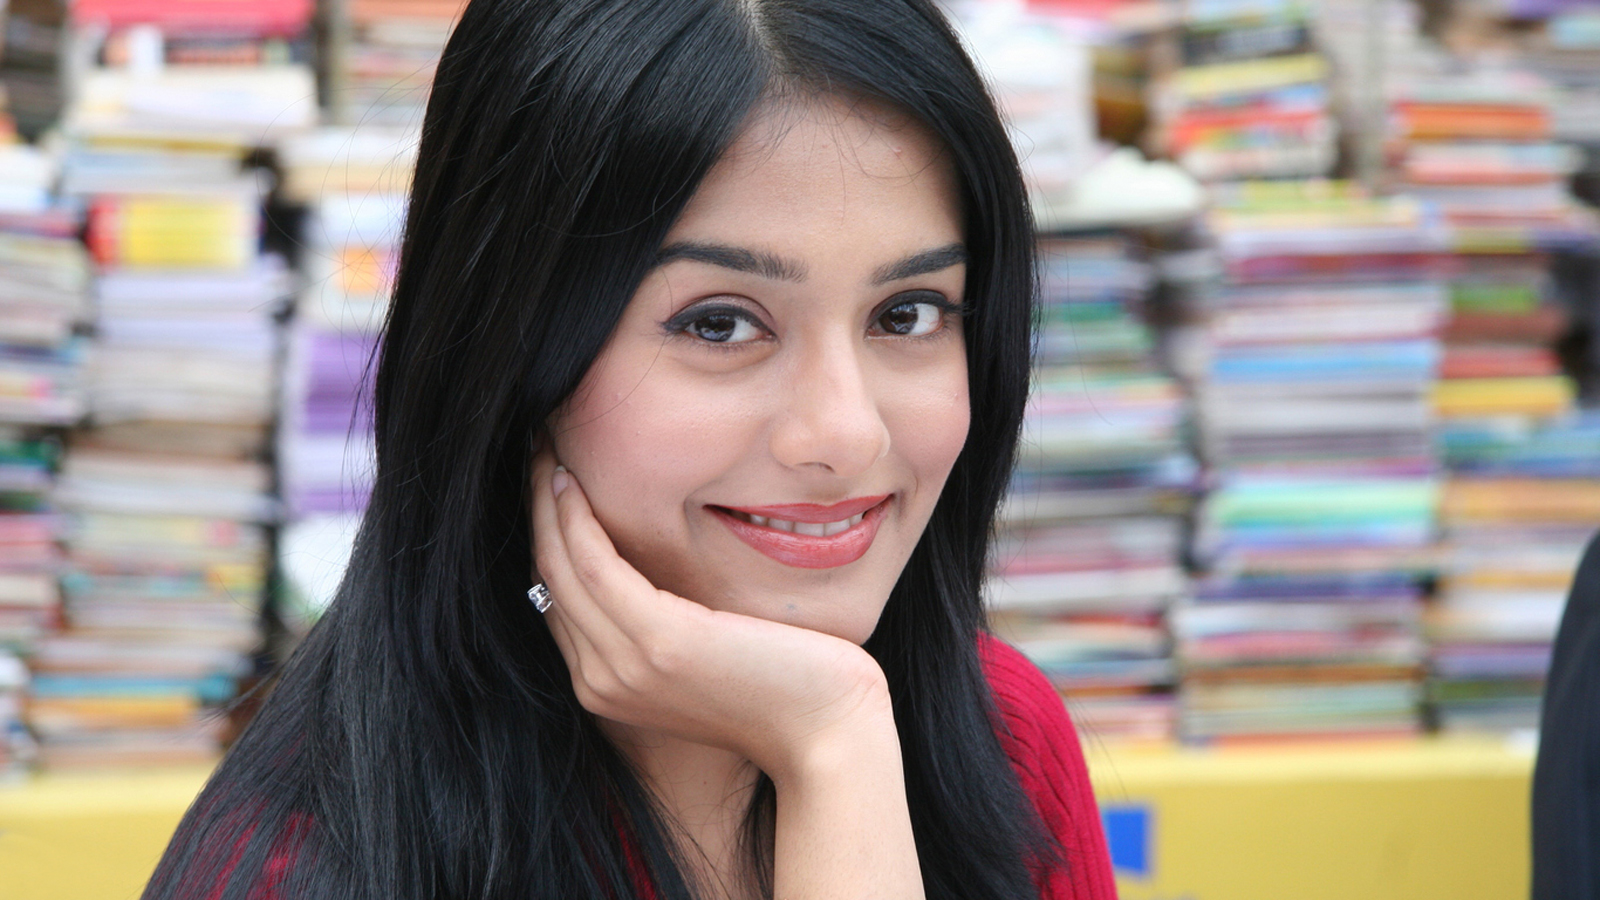 letes bollywood actress amrita rao wallpapers new images free